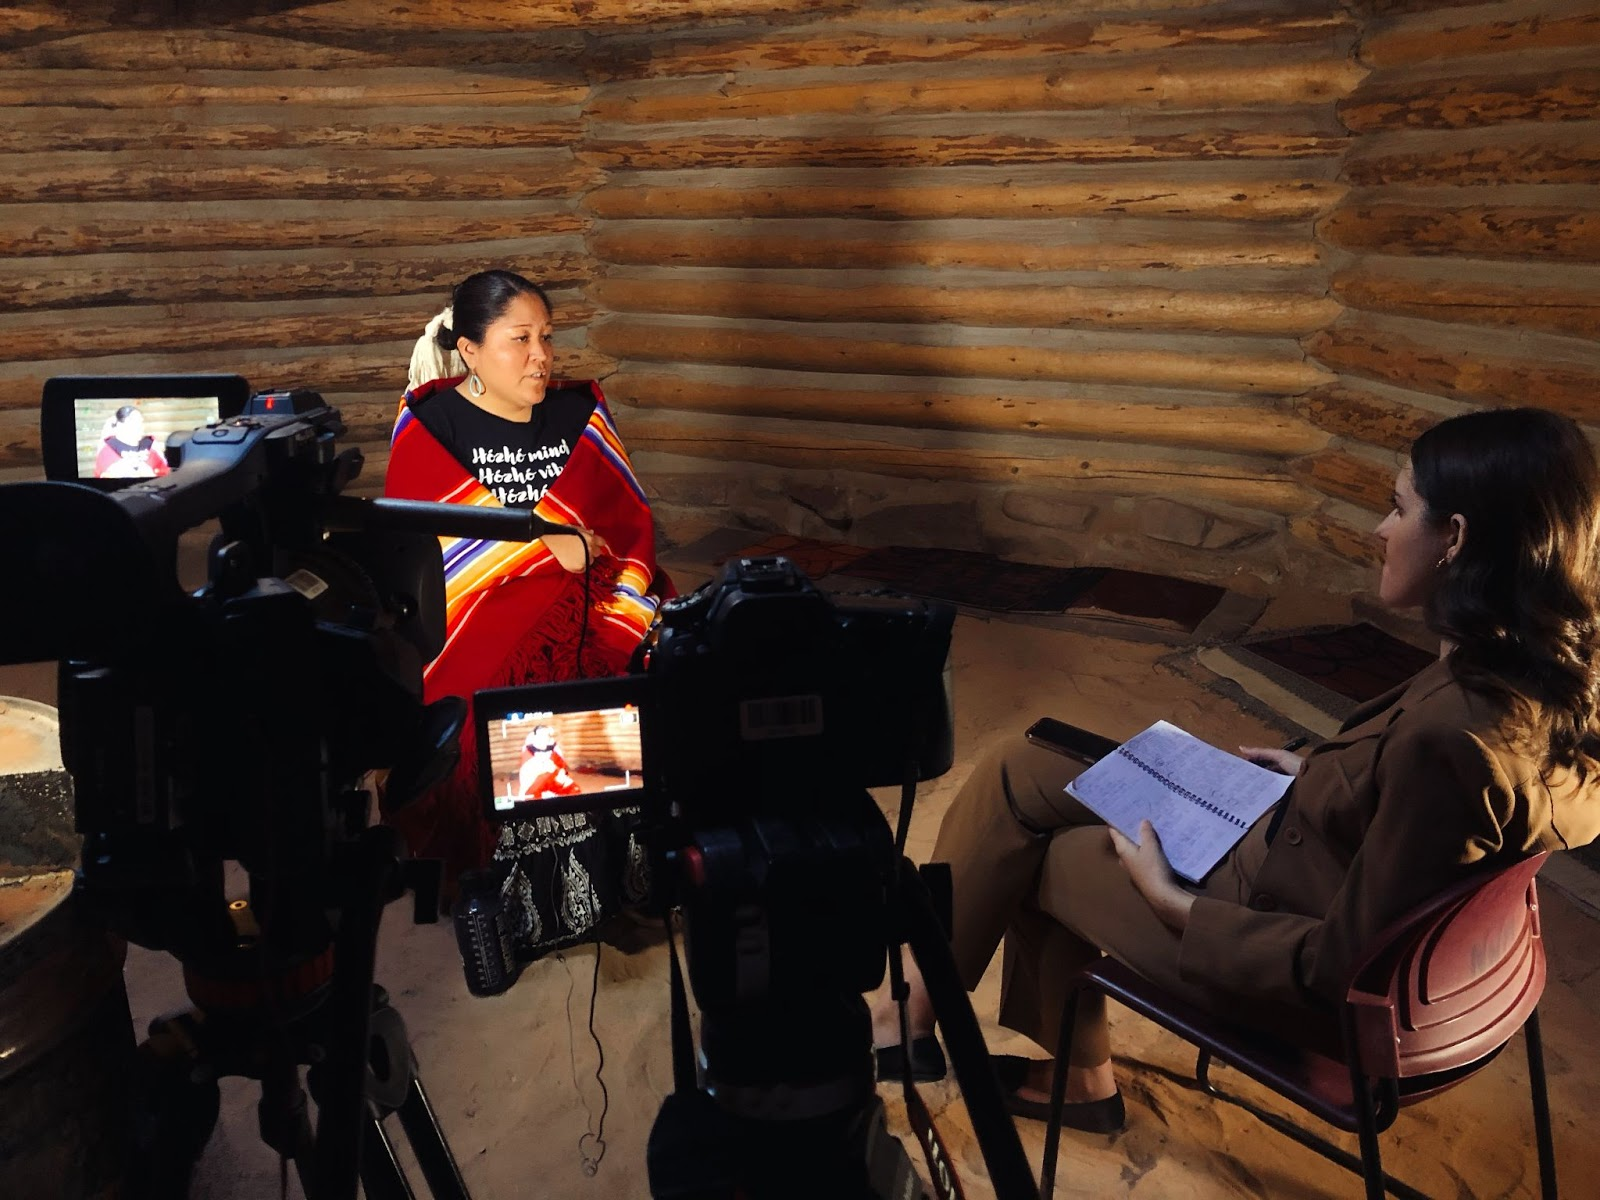 Cronkite students interview a Native American woman.